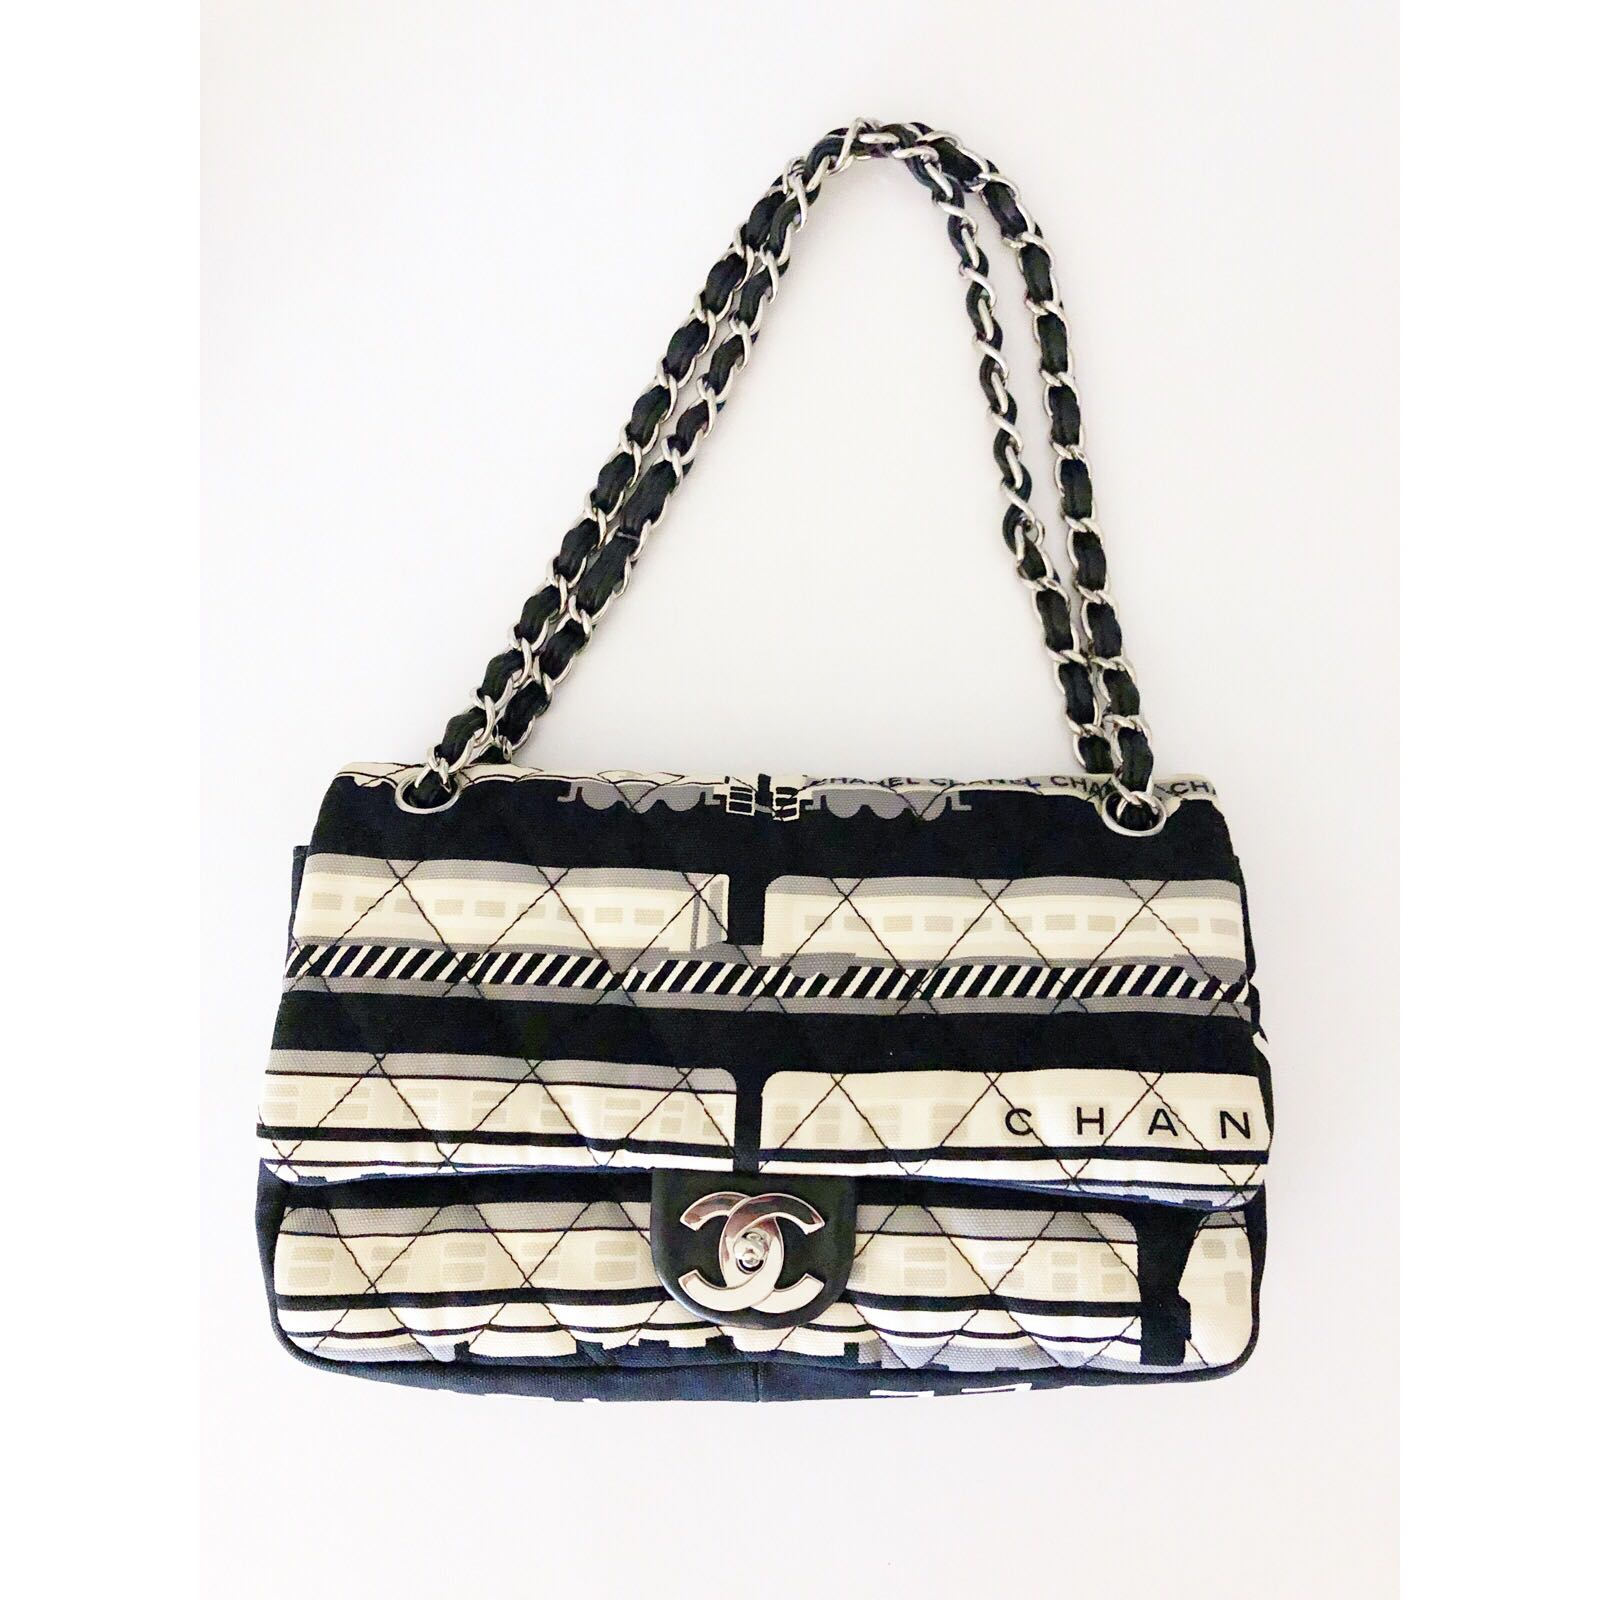 87d3f8aa618a Chanel limited edition Le Train Flap Bag Quilted Printed Canvas Medium,  Luxury, Bags & Wallets, Handbags on Carousell